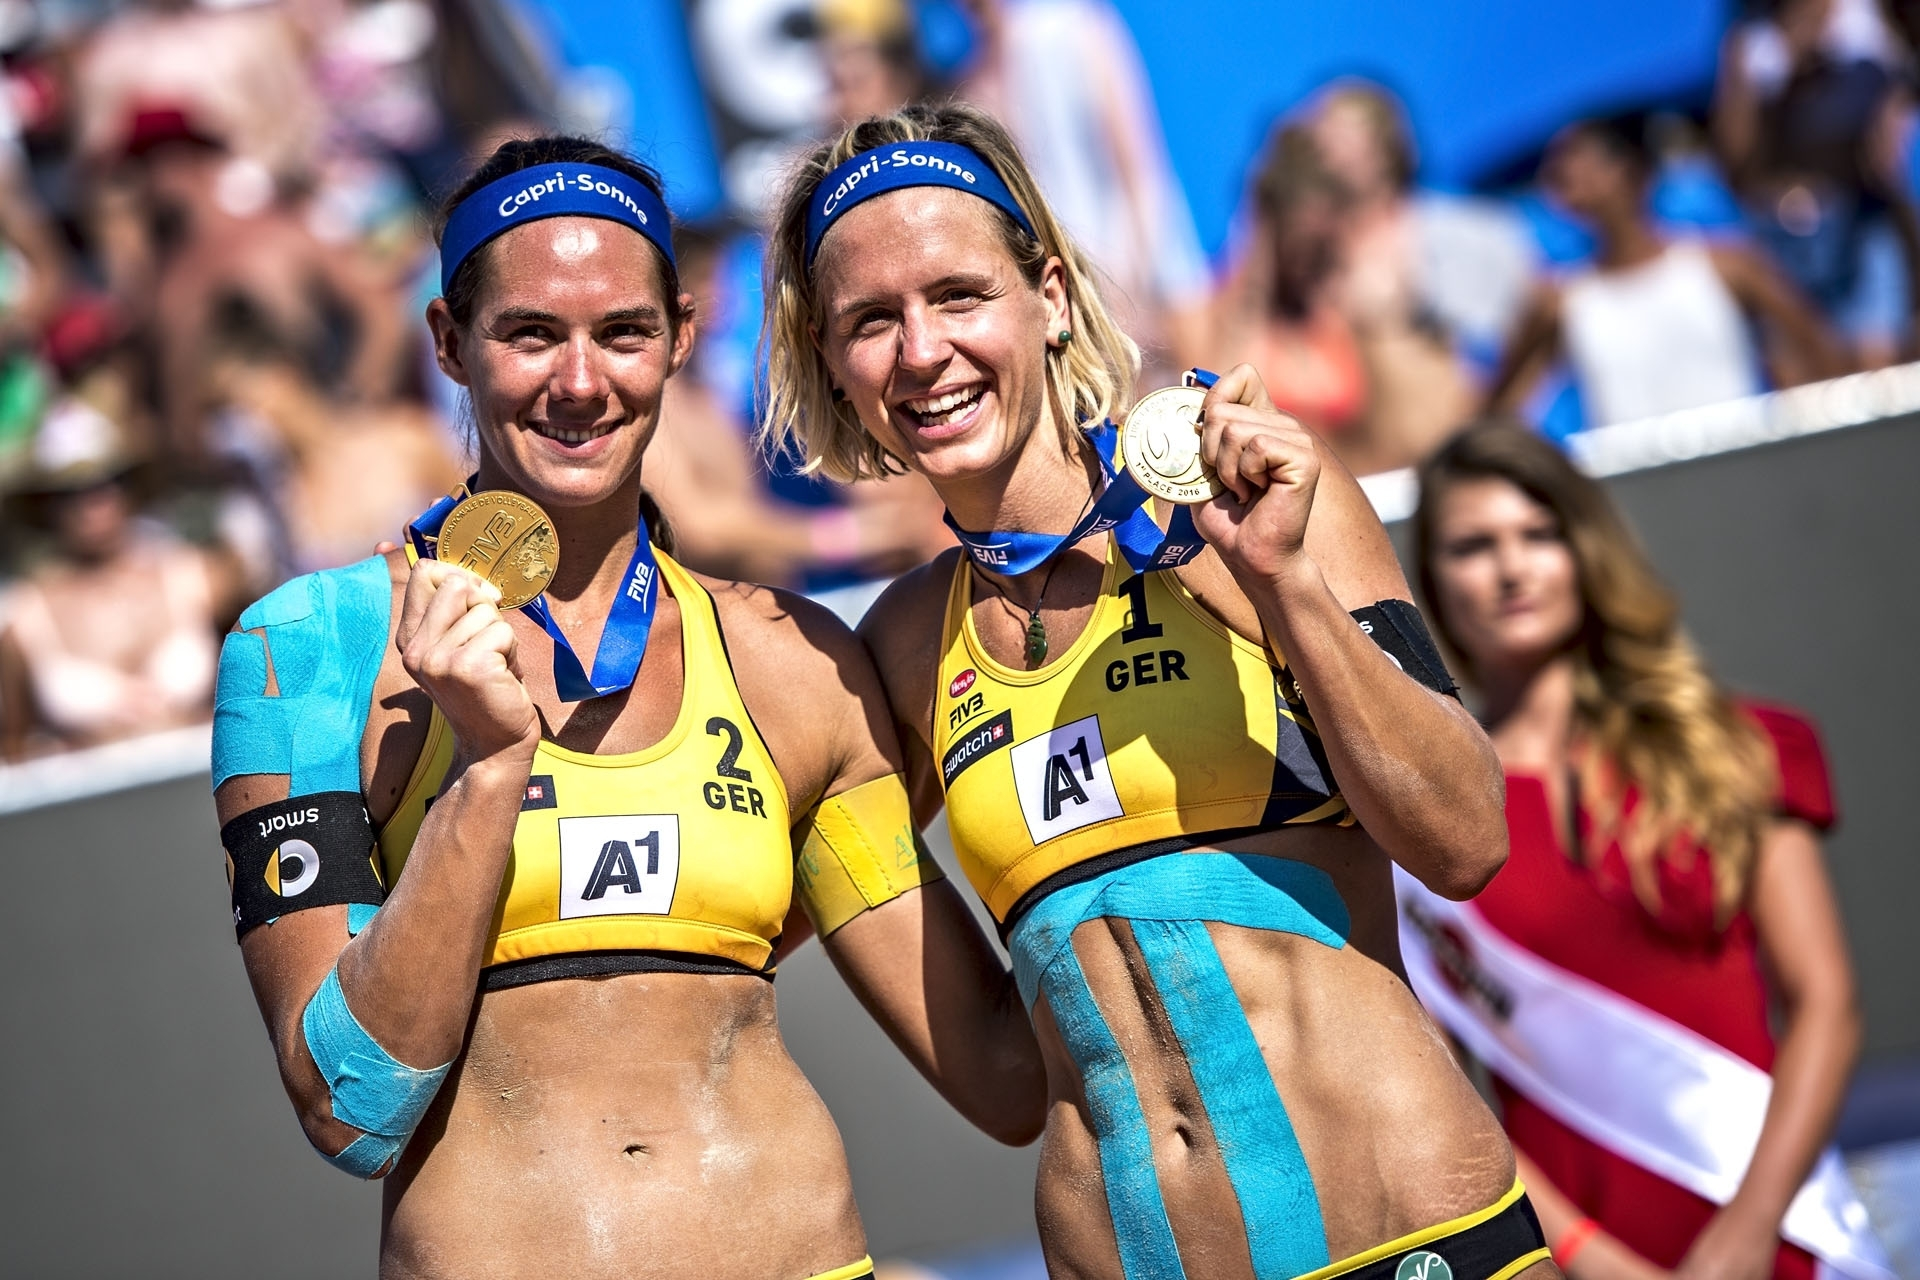 It's been a truly golden 2016 for Kira and Laura. Photocredit: Sebastian Marko.